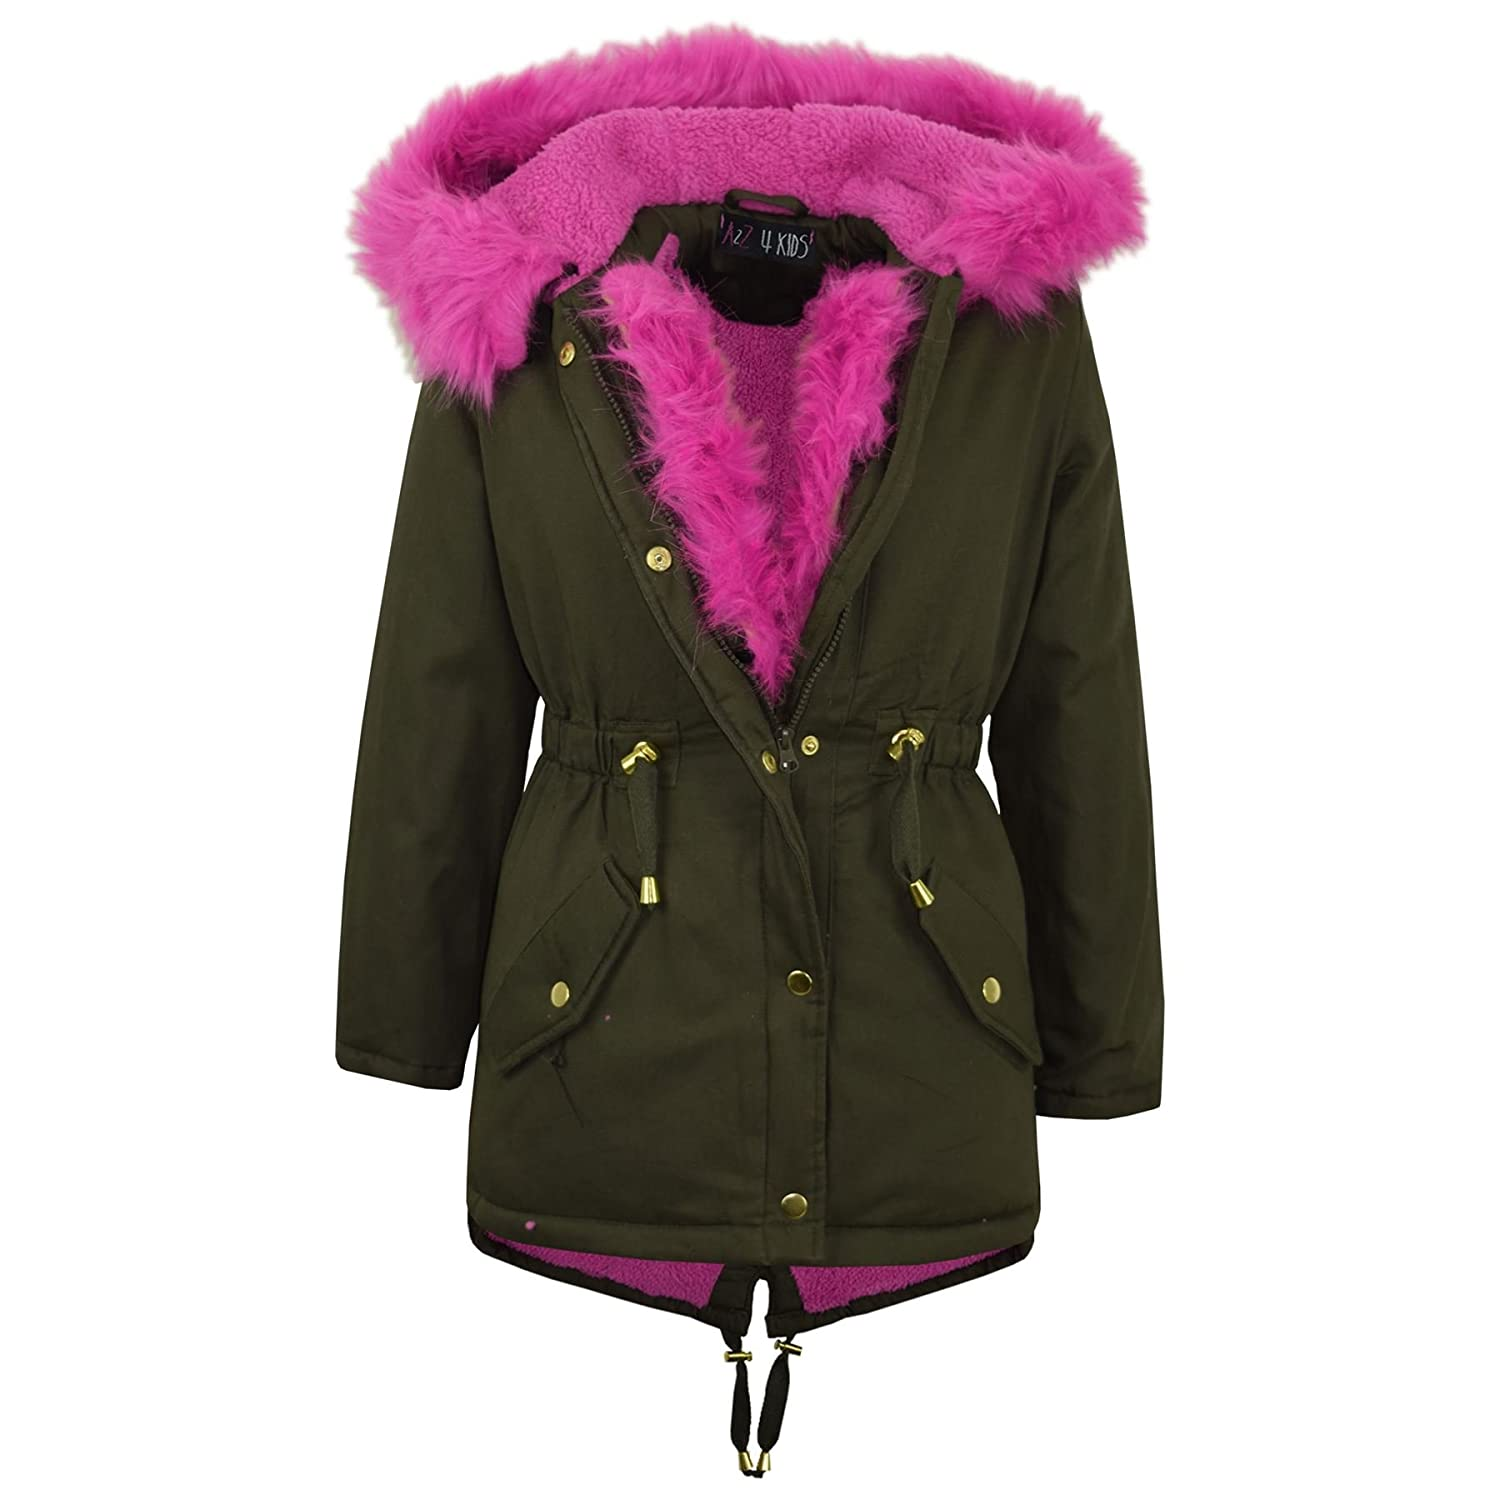 A2Z 4 Kids® Kids Hooded Jacket Girls Faux Fur Parka School Jackets Outwear Coat New Age 7 8 9 10 11 12 13 Years